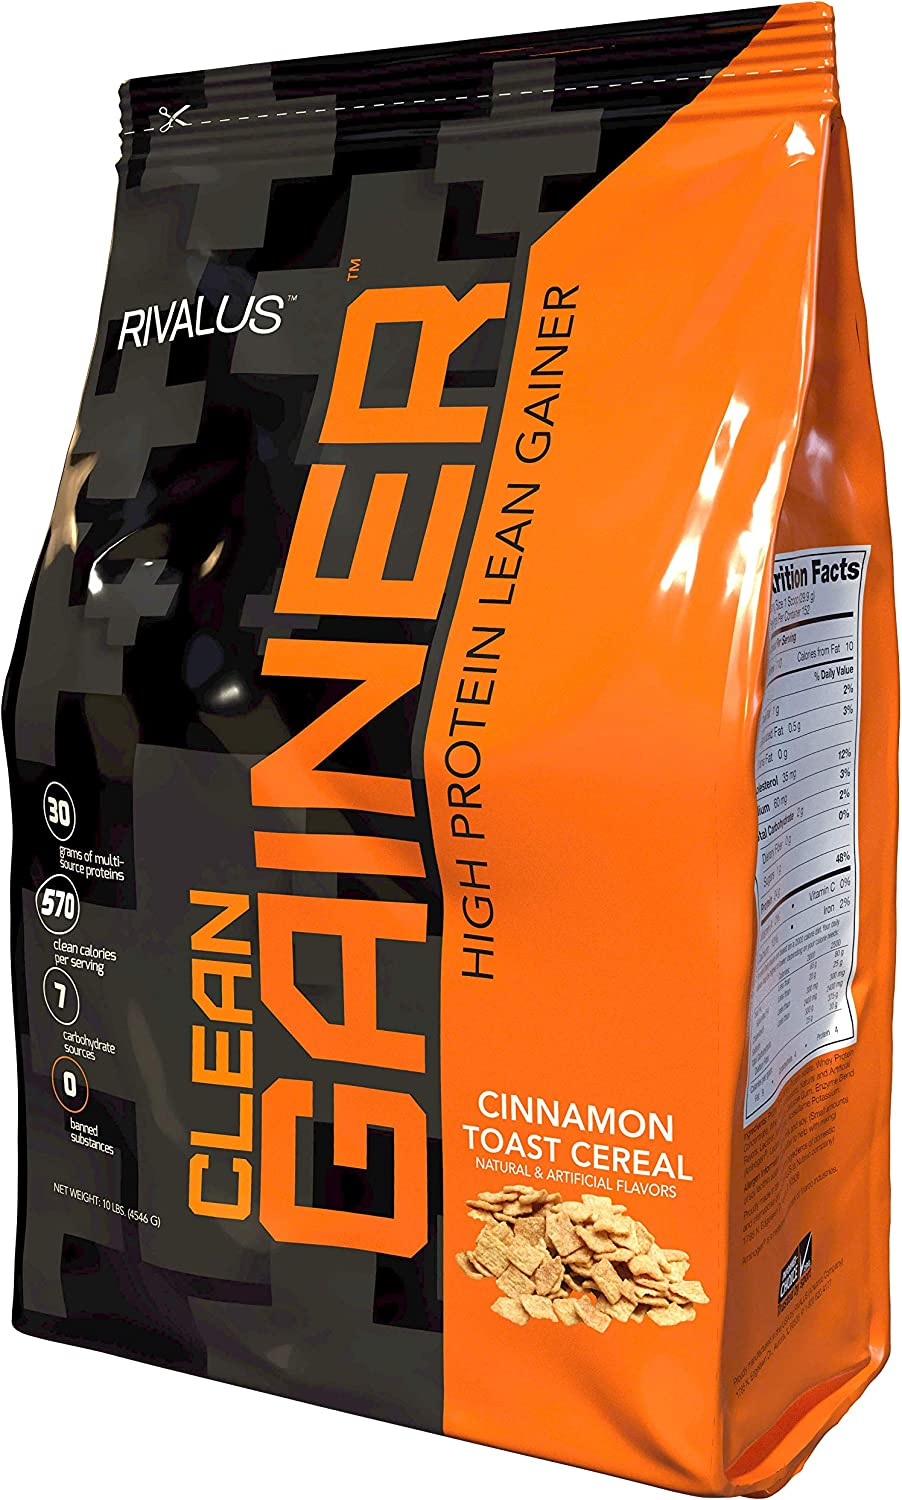 Rivalus Clean Gainer New product! New type Cinnamon Toast Cereal 10 Max 57% OFF Pound